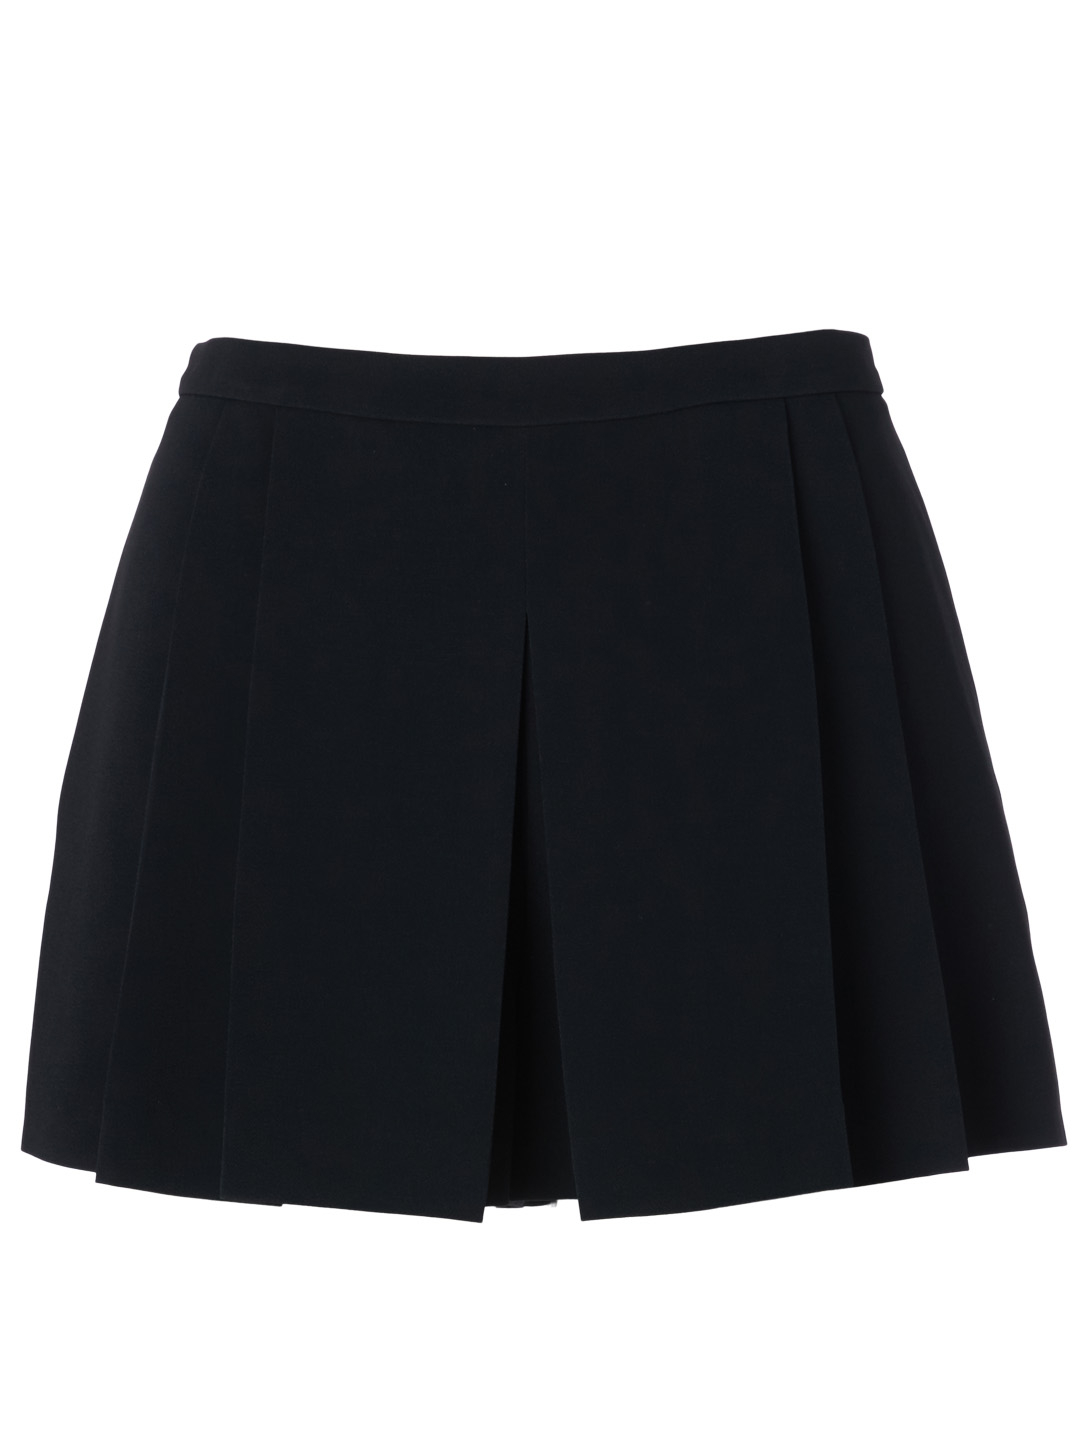 RED VALENTINO Pleated High-Waisted Shorts Women's Black